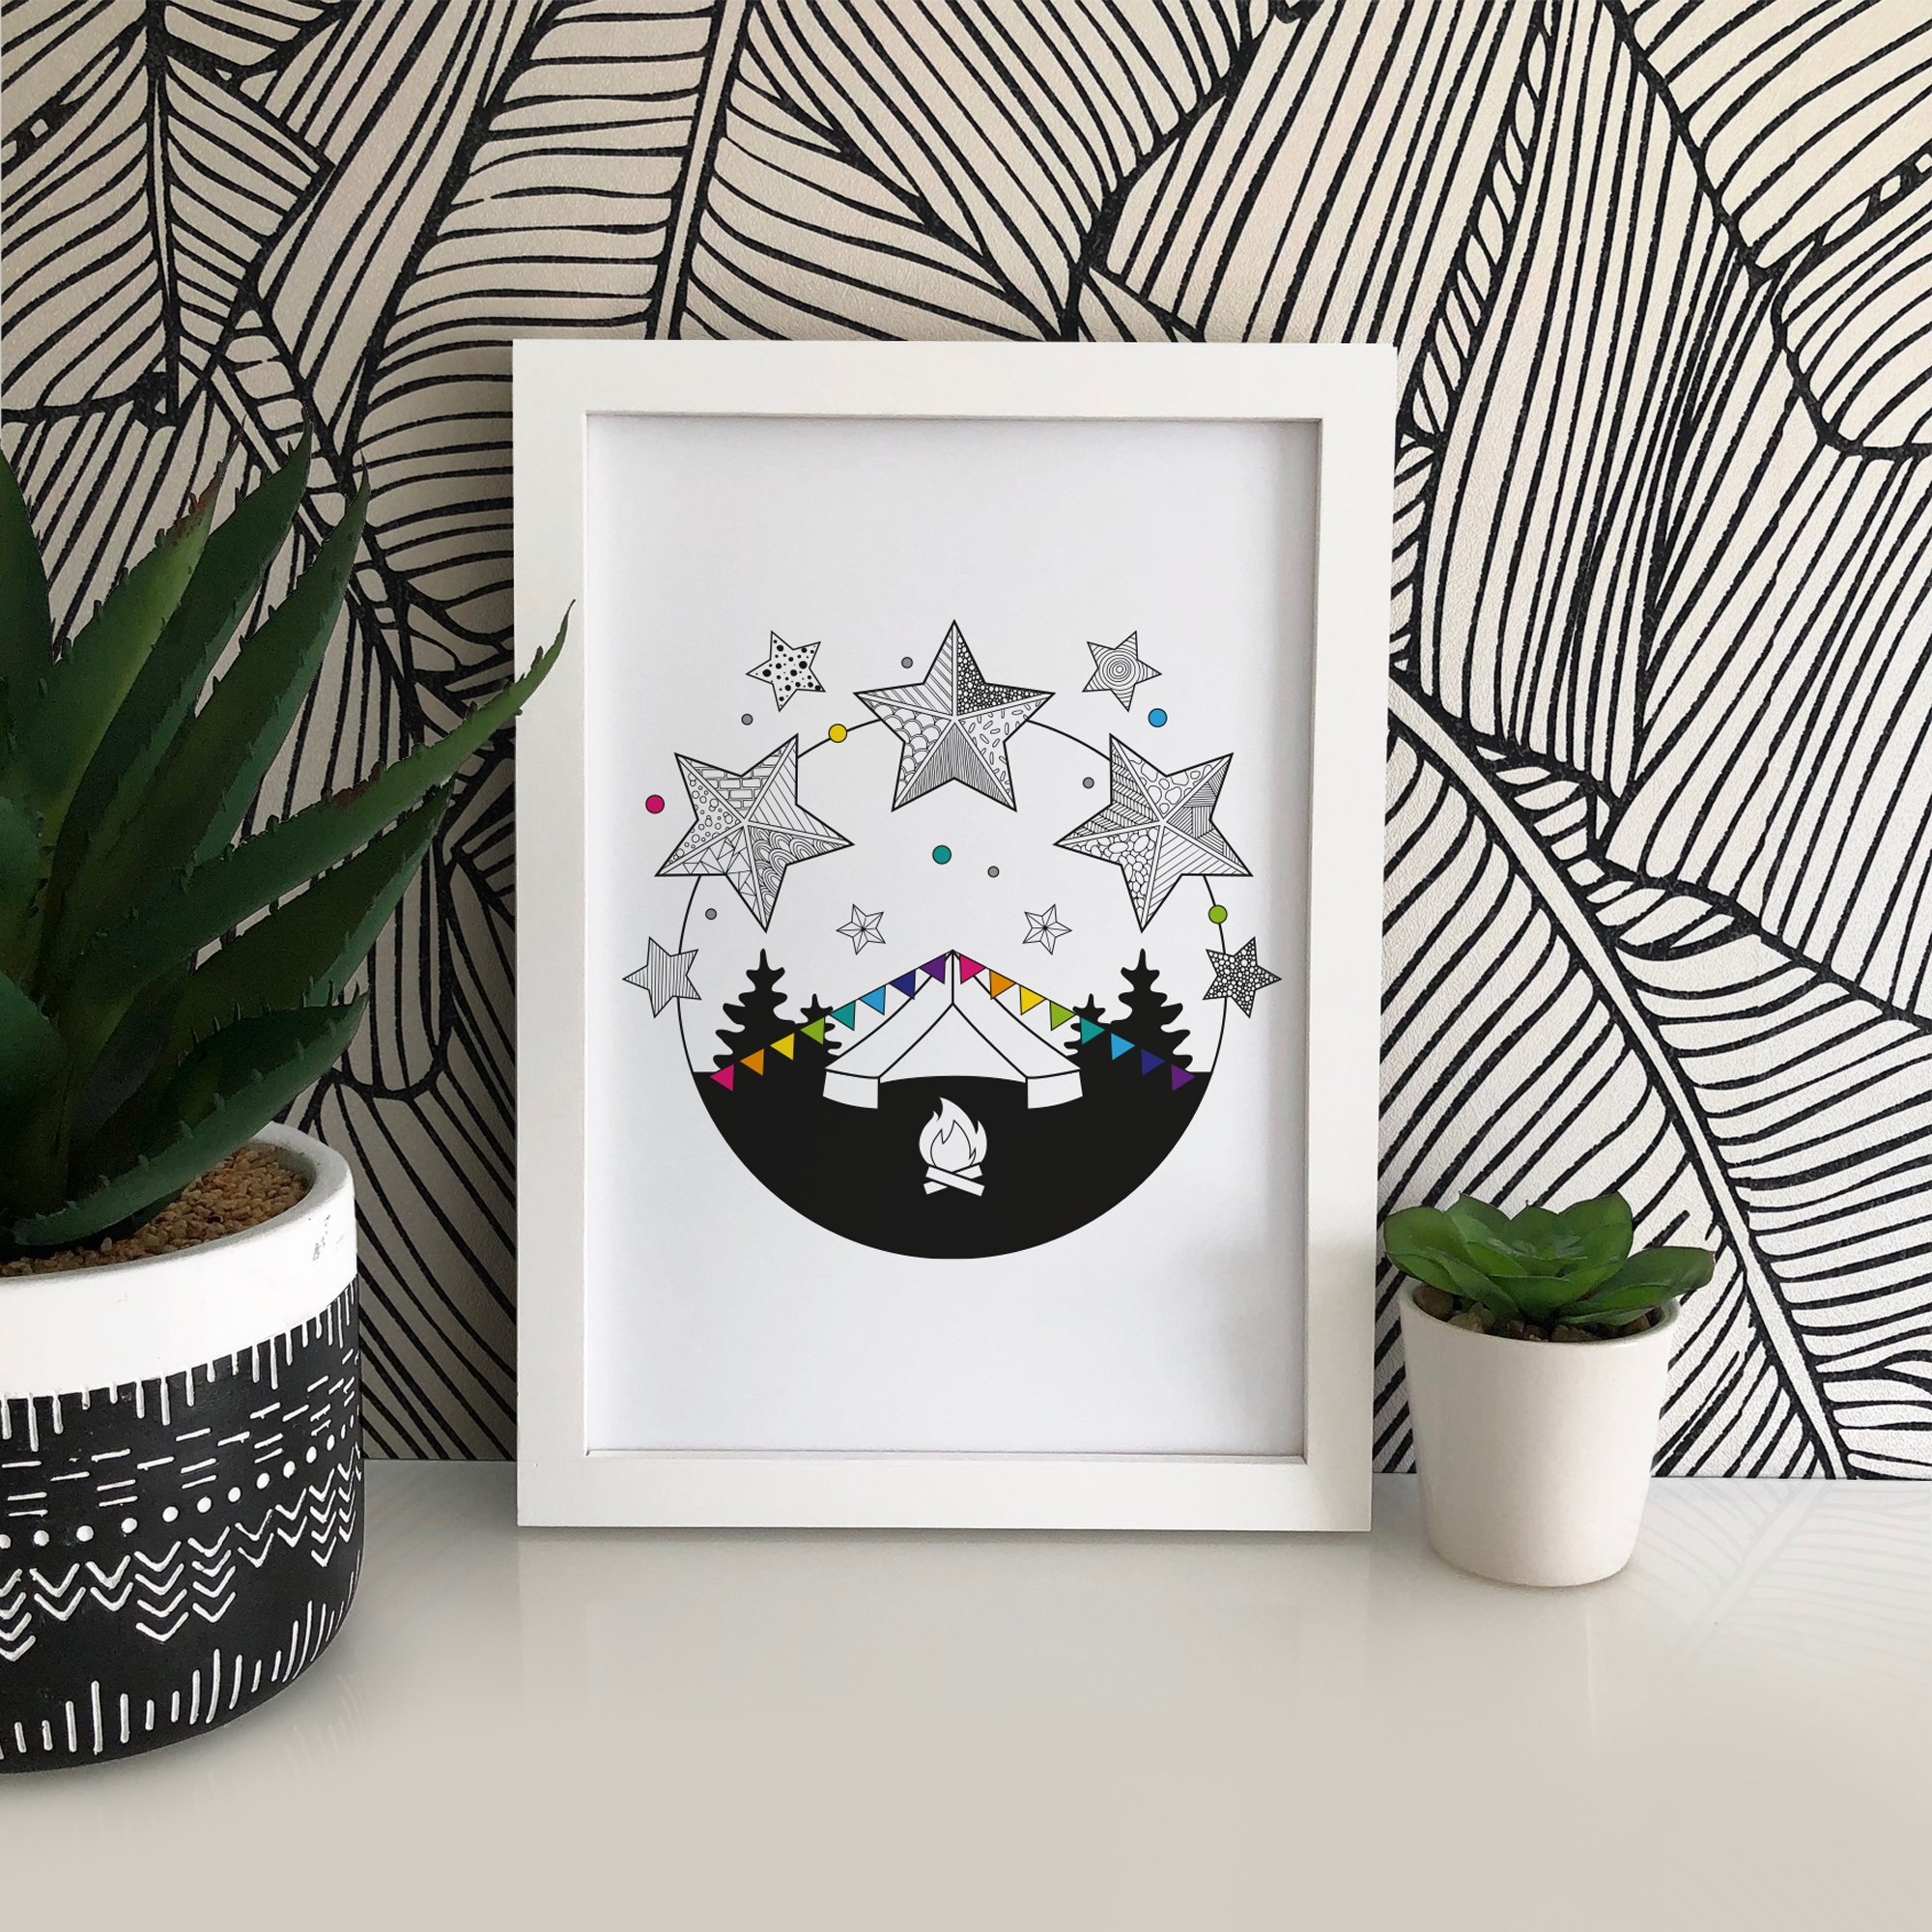 Printed onto 190gsm archival matter paper, this print is crisp and vibrant and ready to be framed and displayed! Looks great as part of a gallery wall or in a kids bedroom.